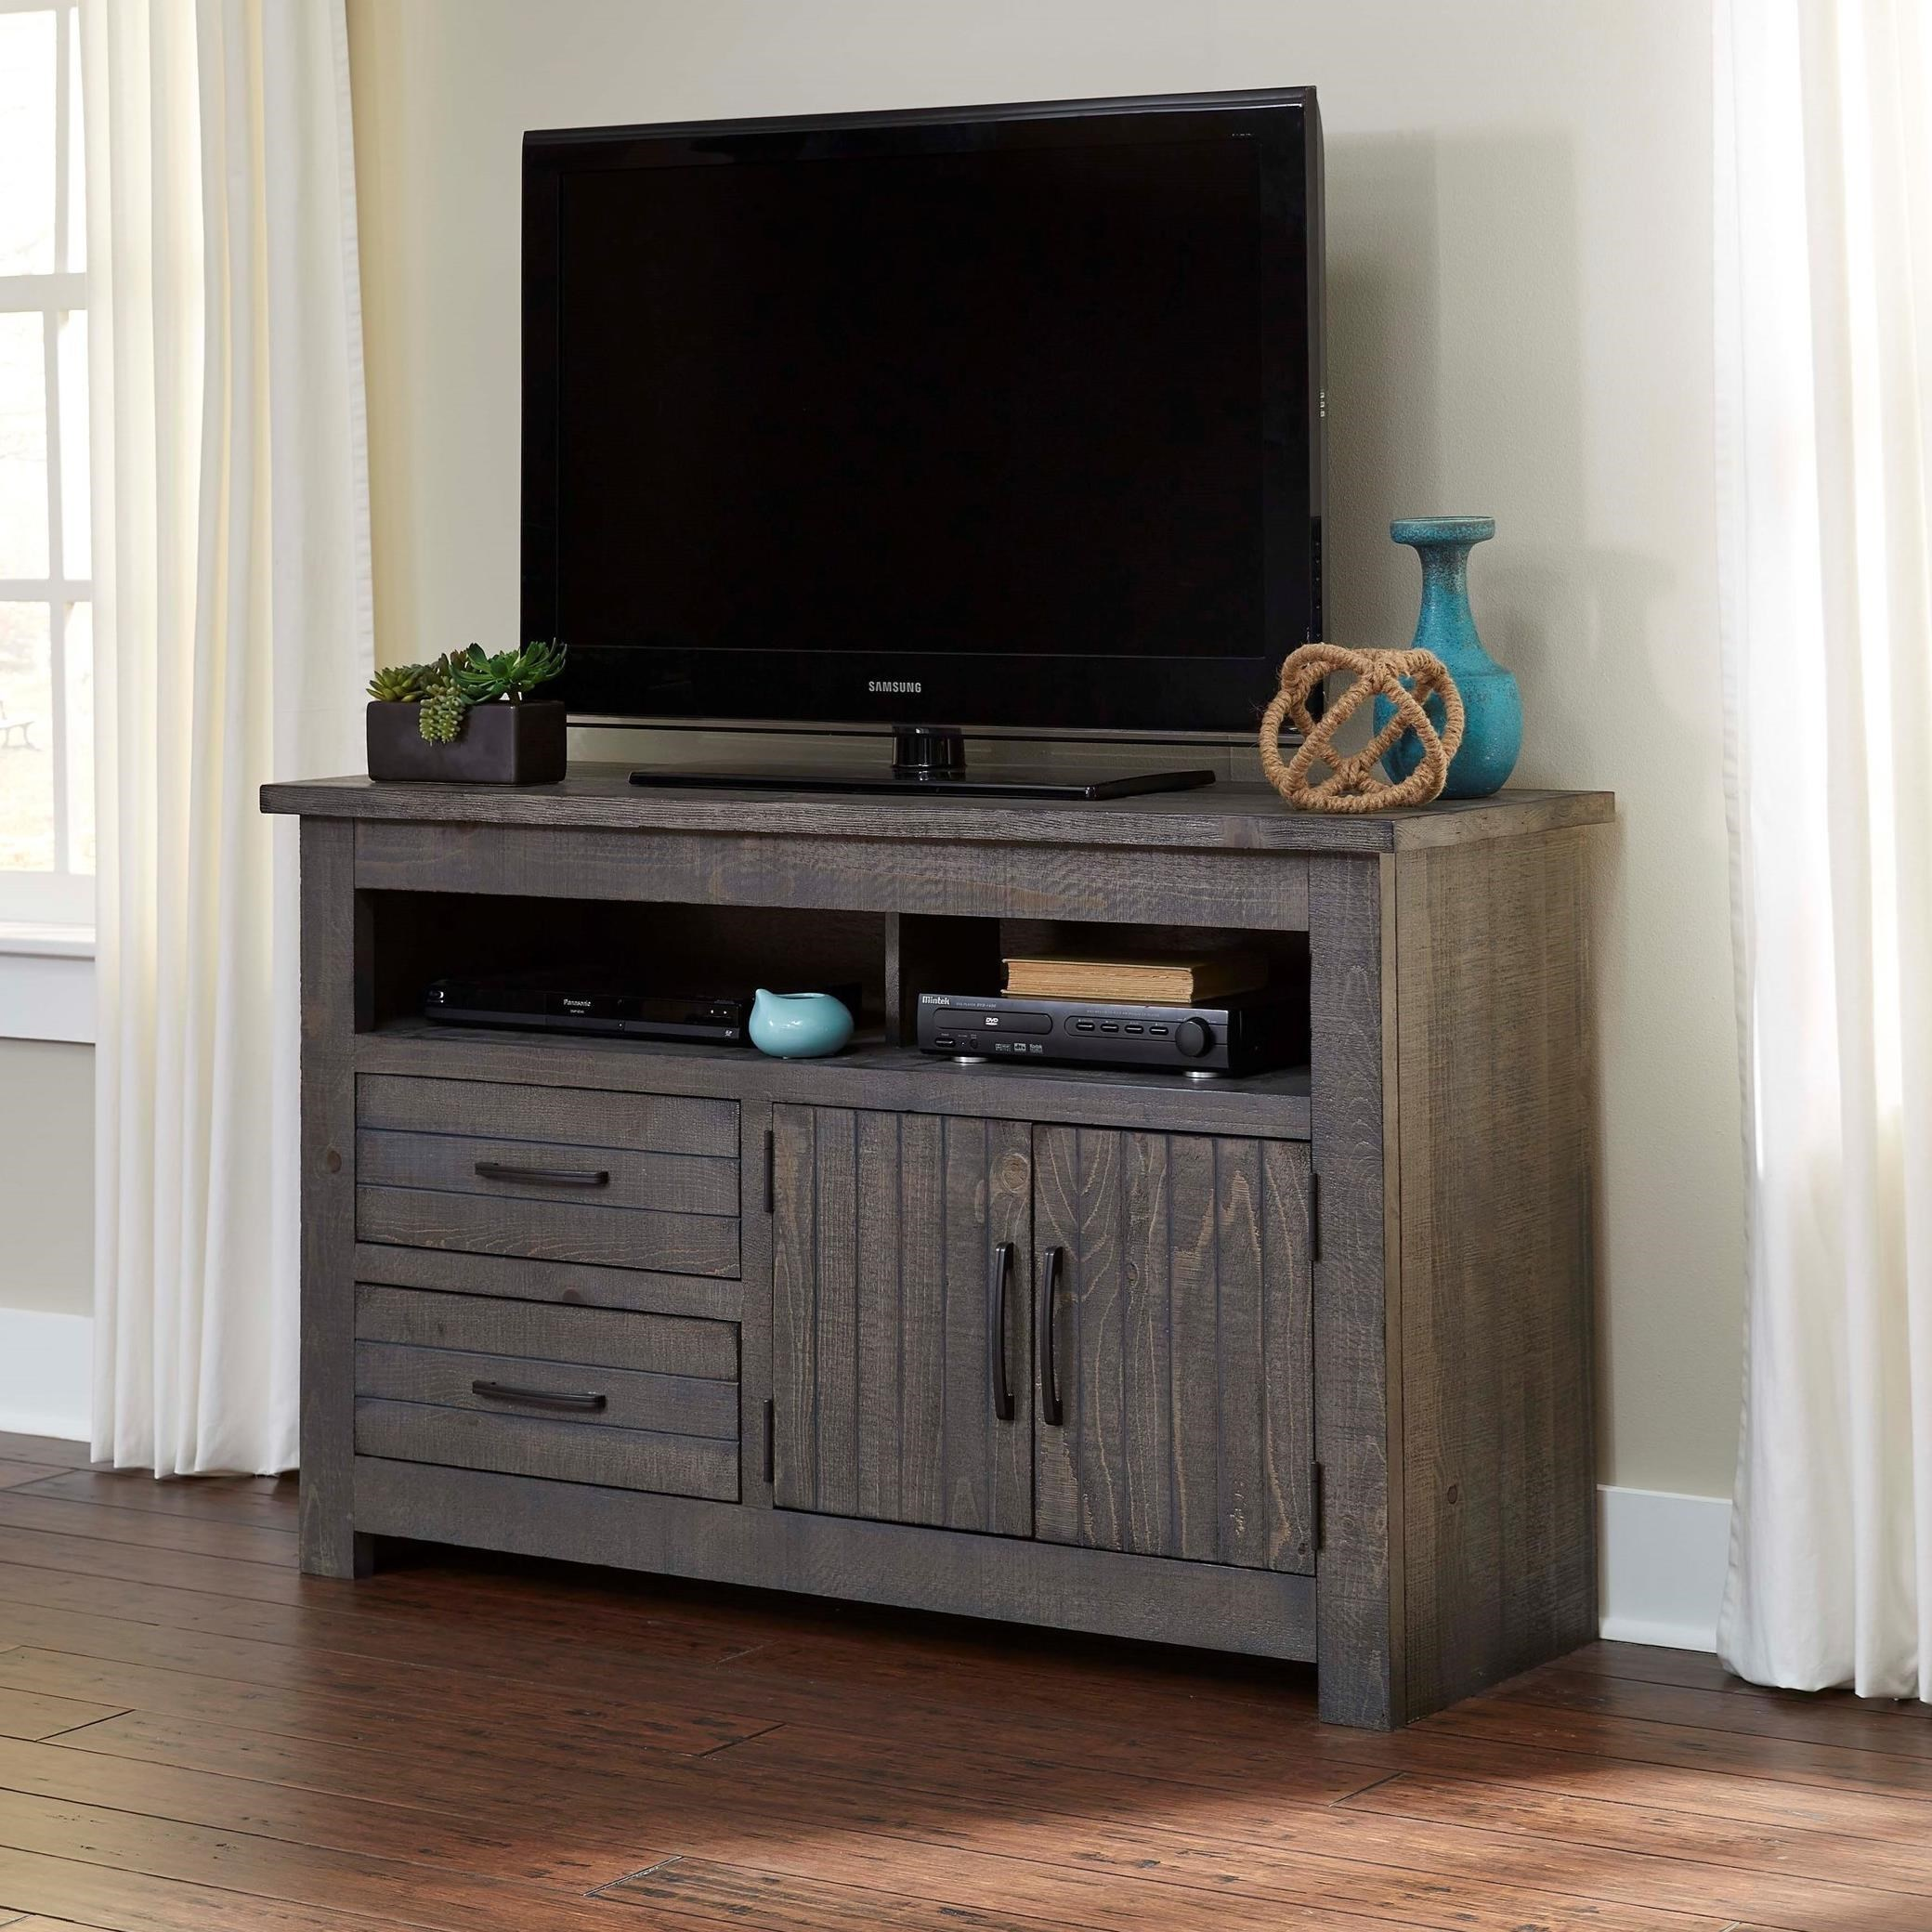 Furniture Corp: Progressive Furniture Nest 54 Inch Console With Grooved